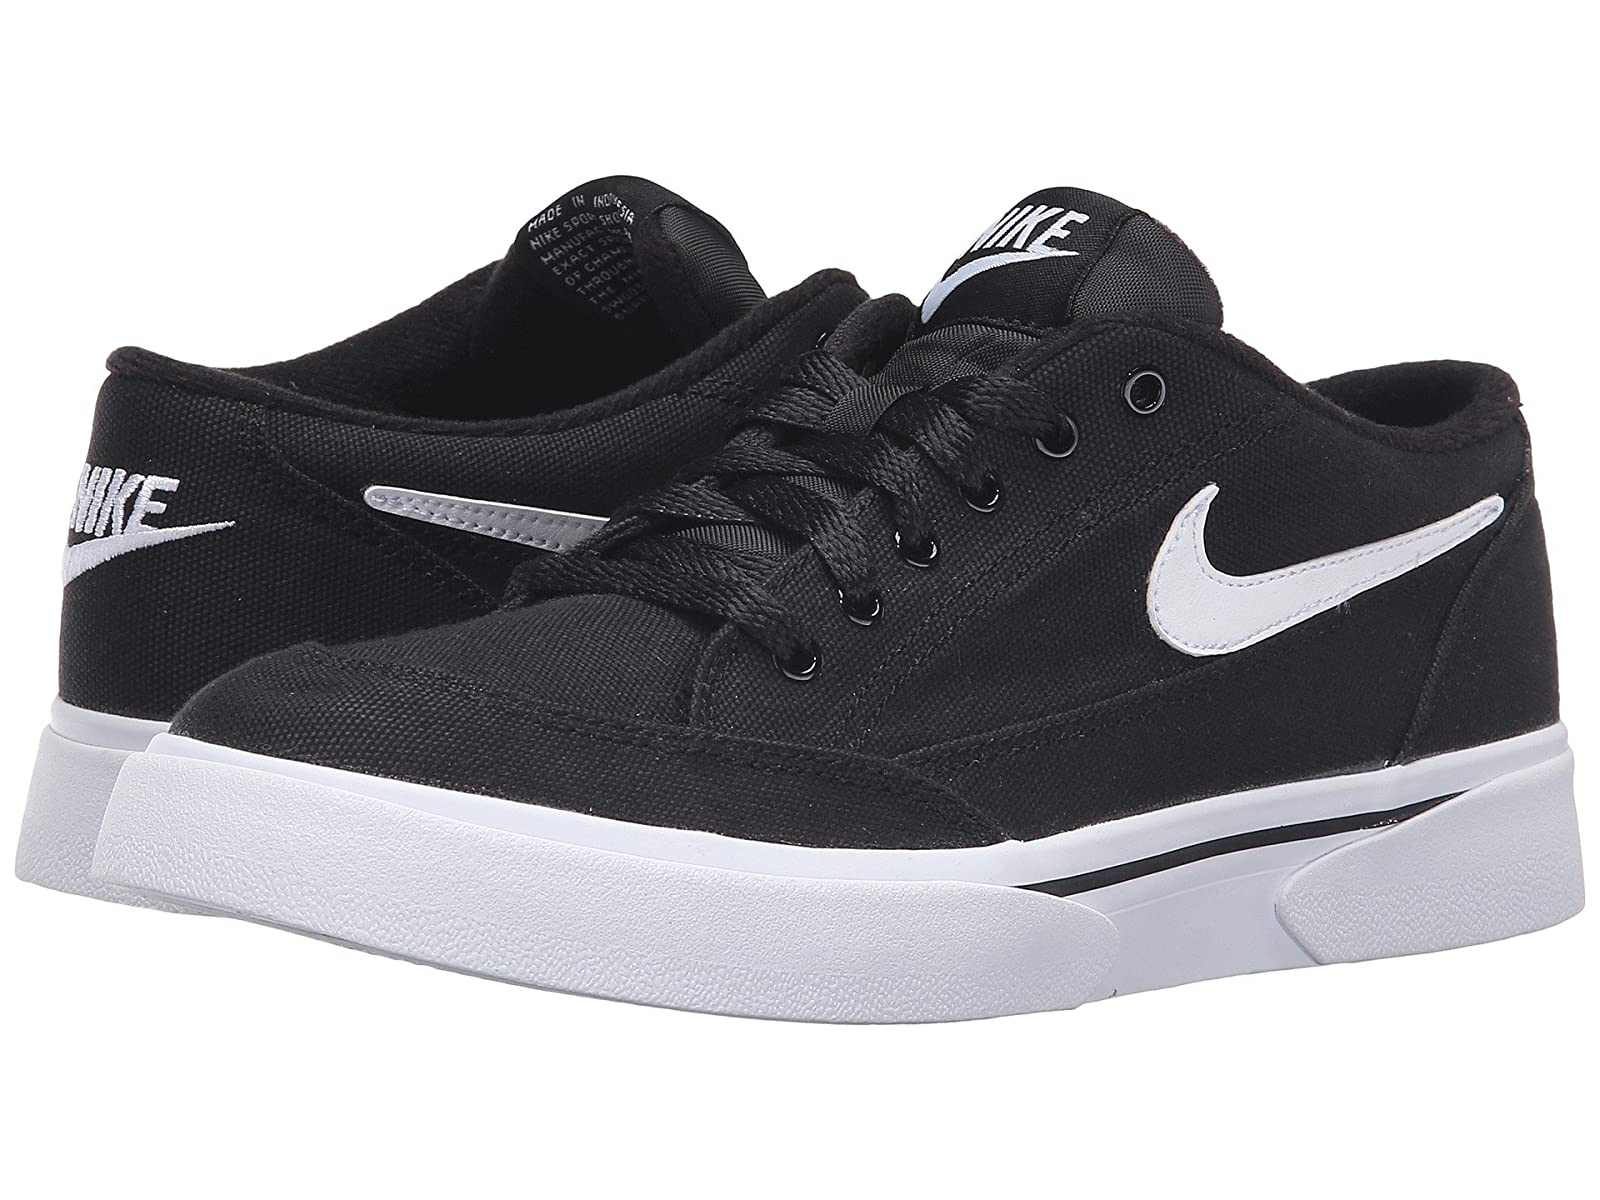 Nike GTS '16Cheap and distinctive eye-catching shoes